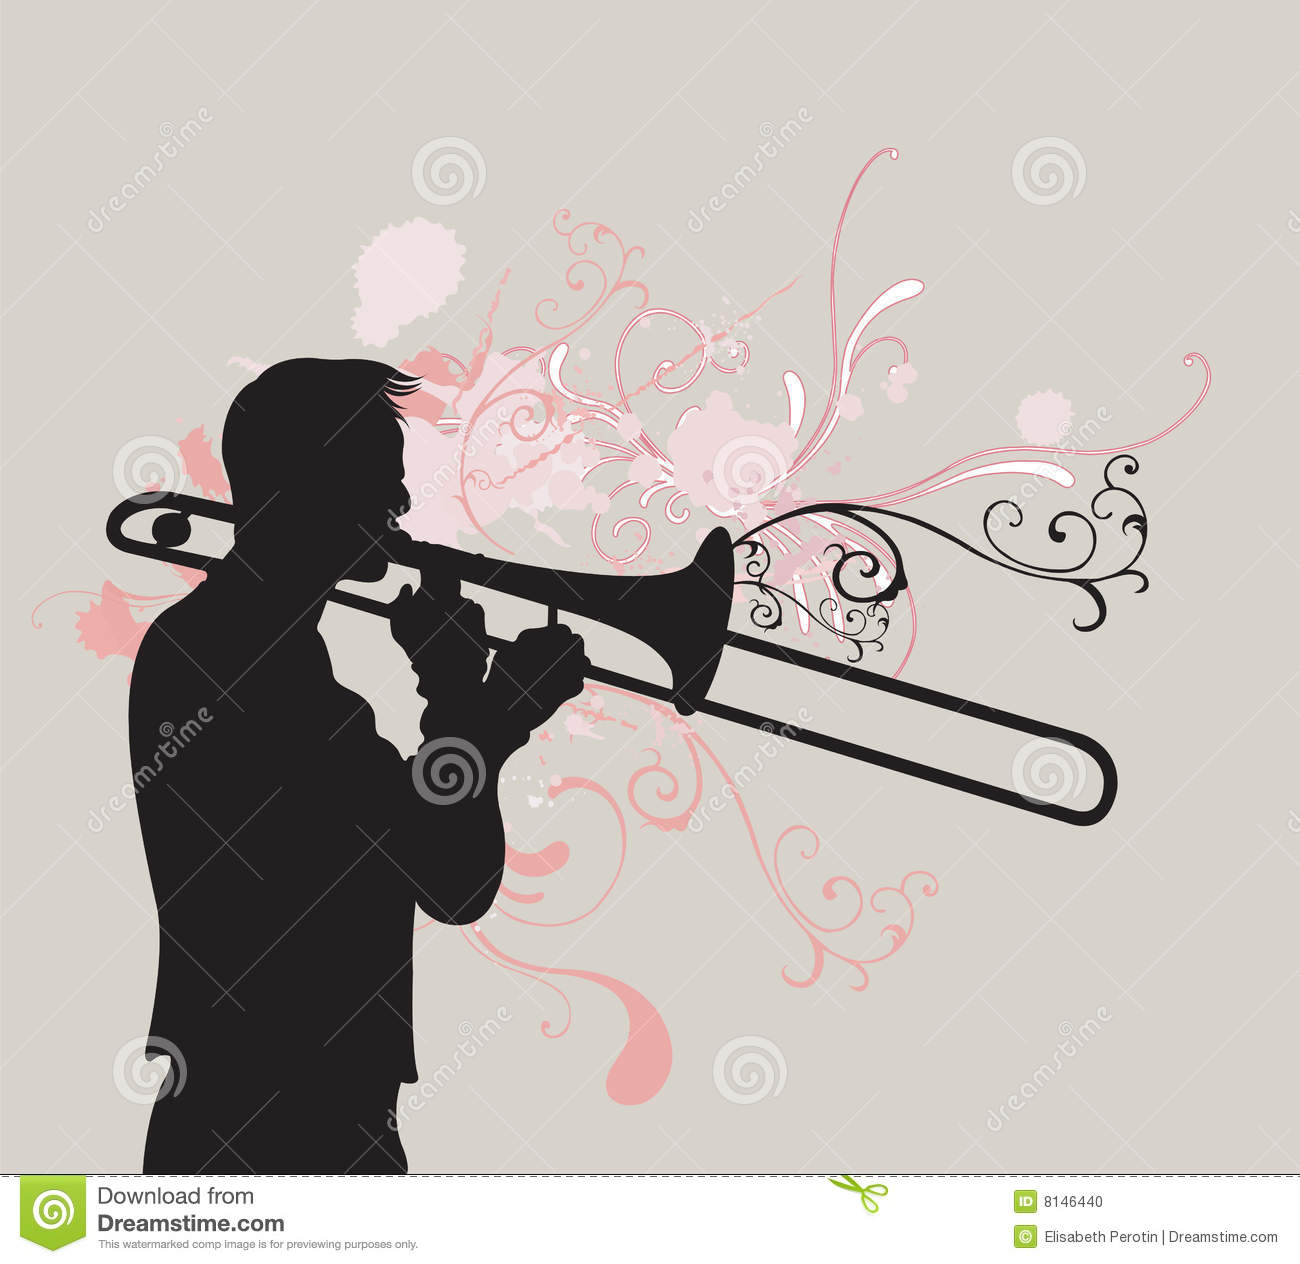 Trombone Player Stock Photo - Image: 8146440: dreamstime.com/stock-photo-trombone-player-image8146440